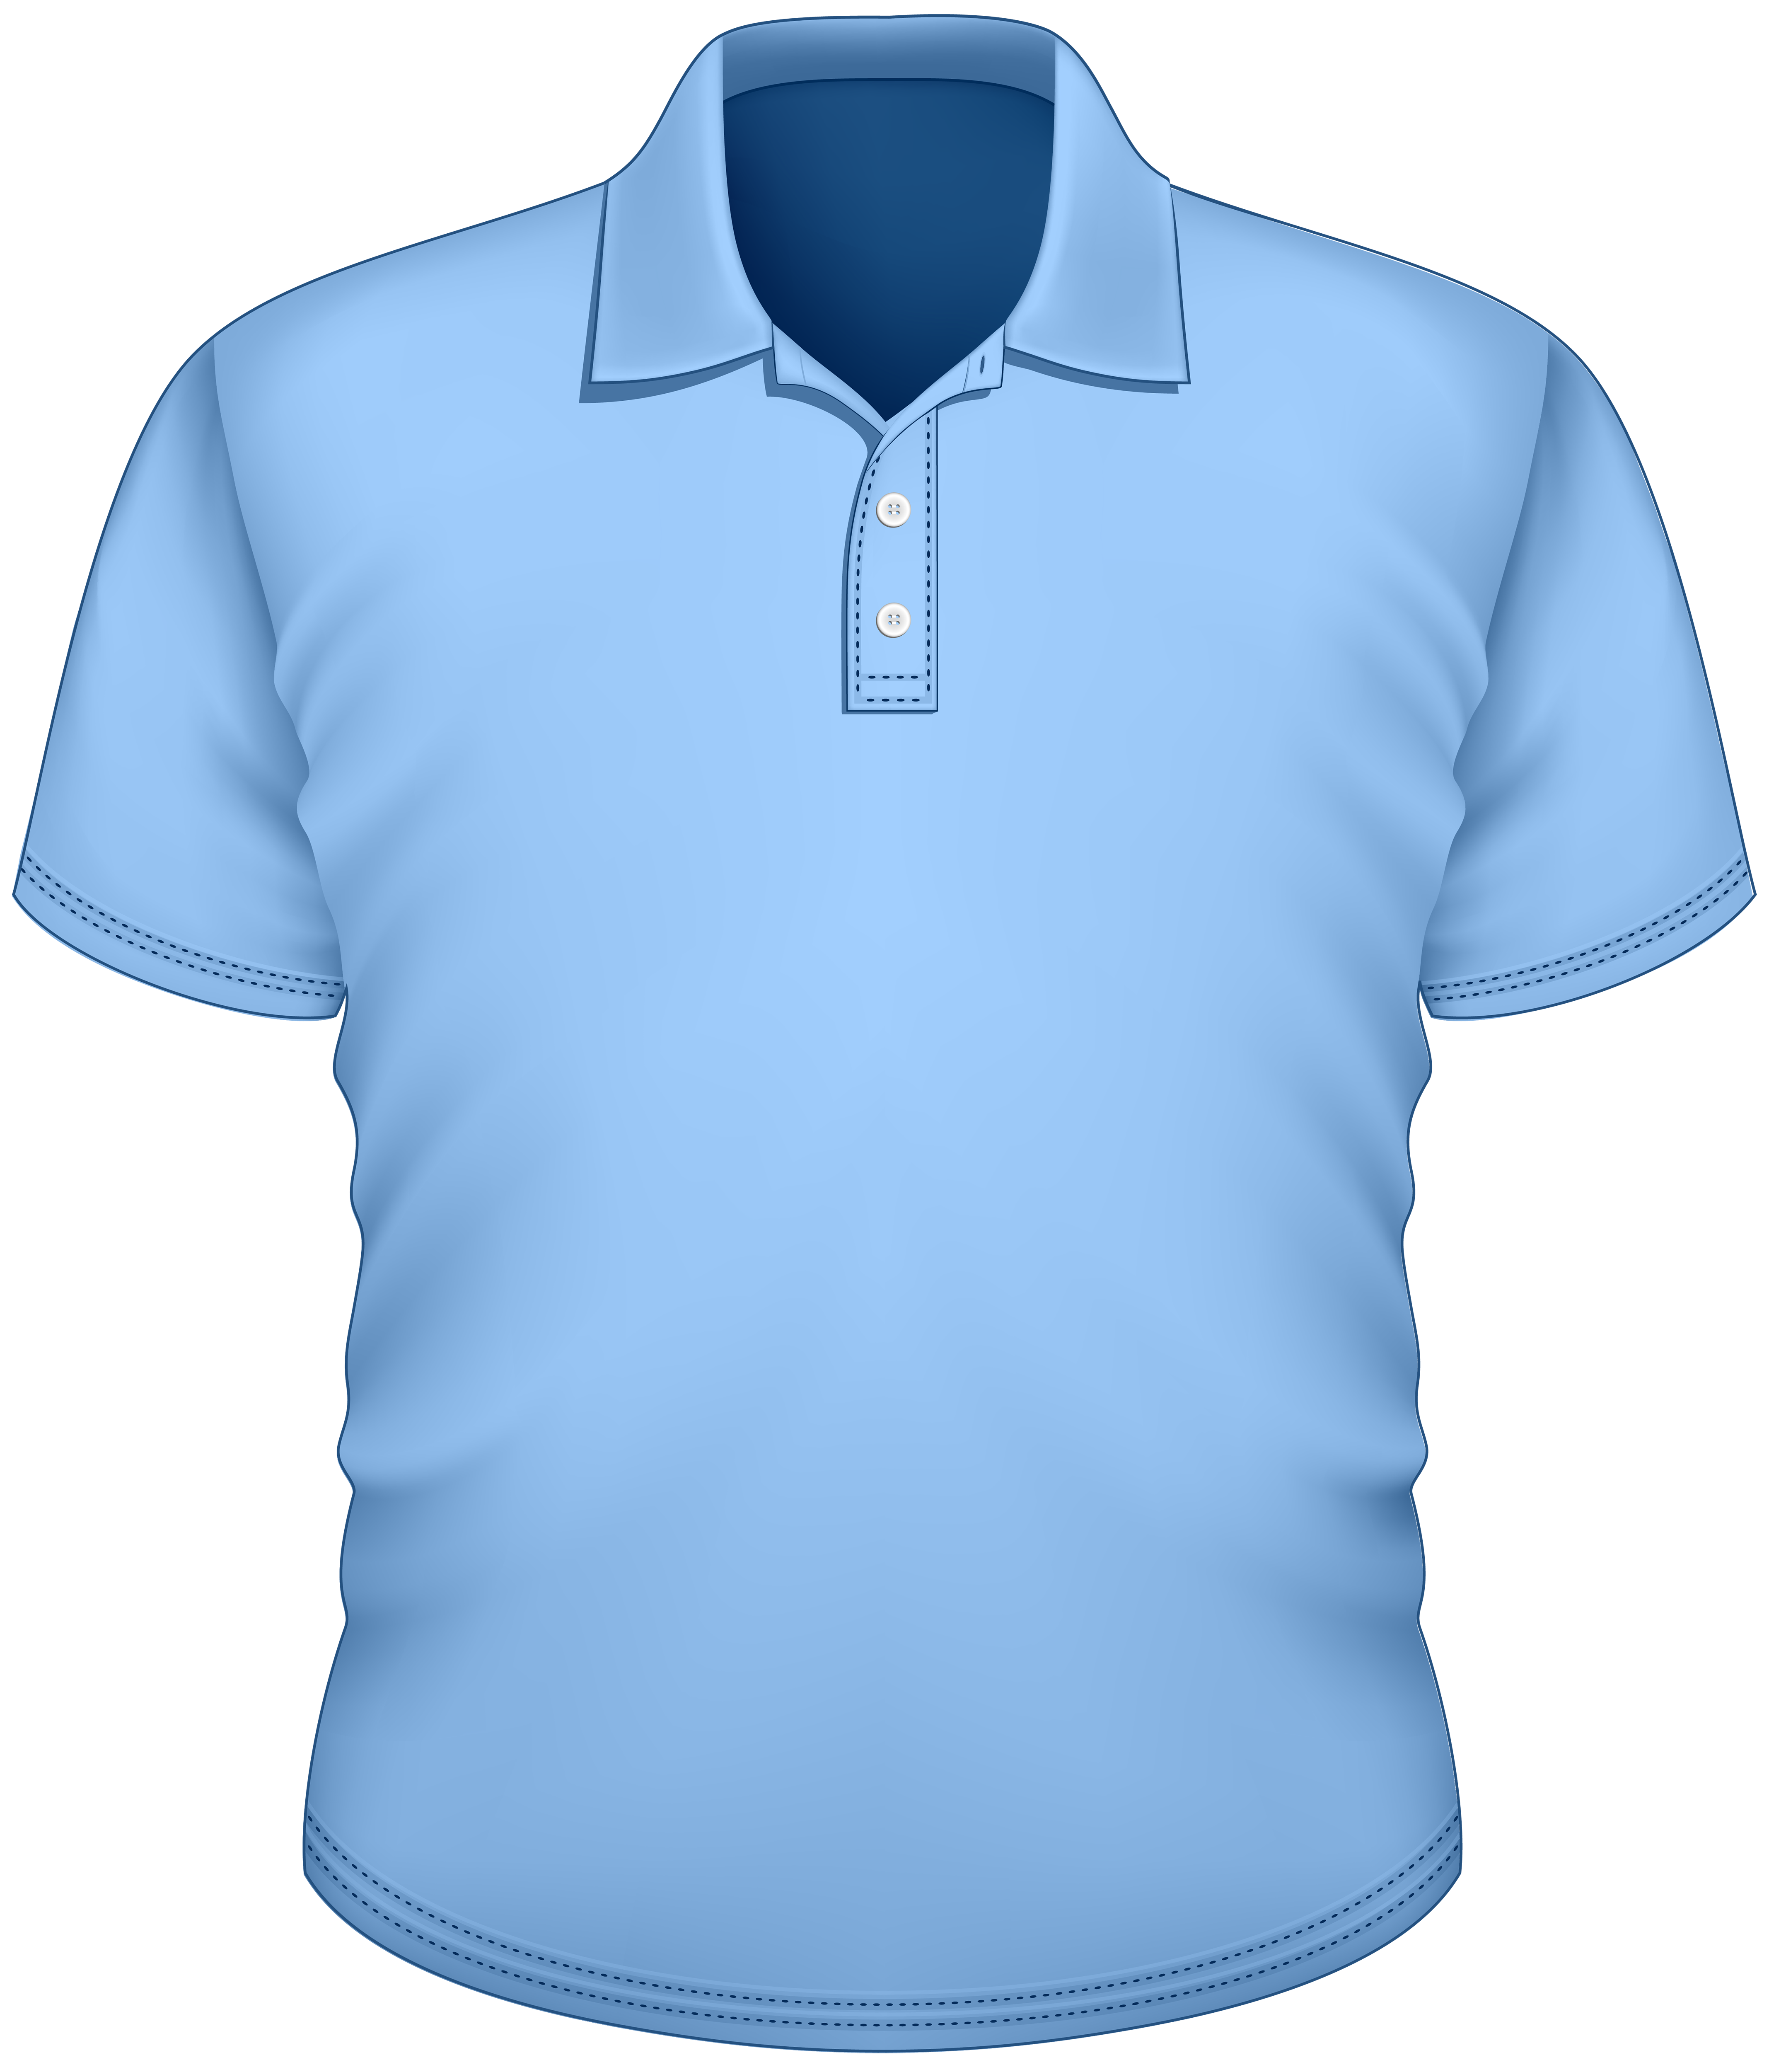 Clothing clipart shirt. Male blue png best